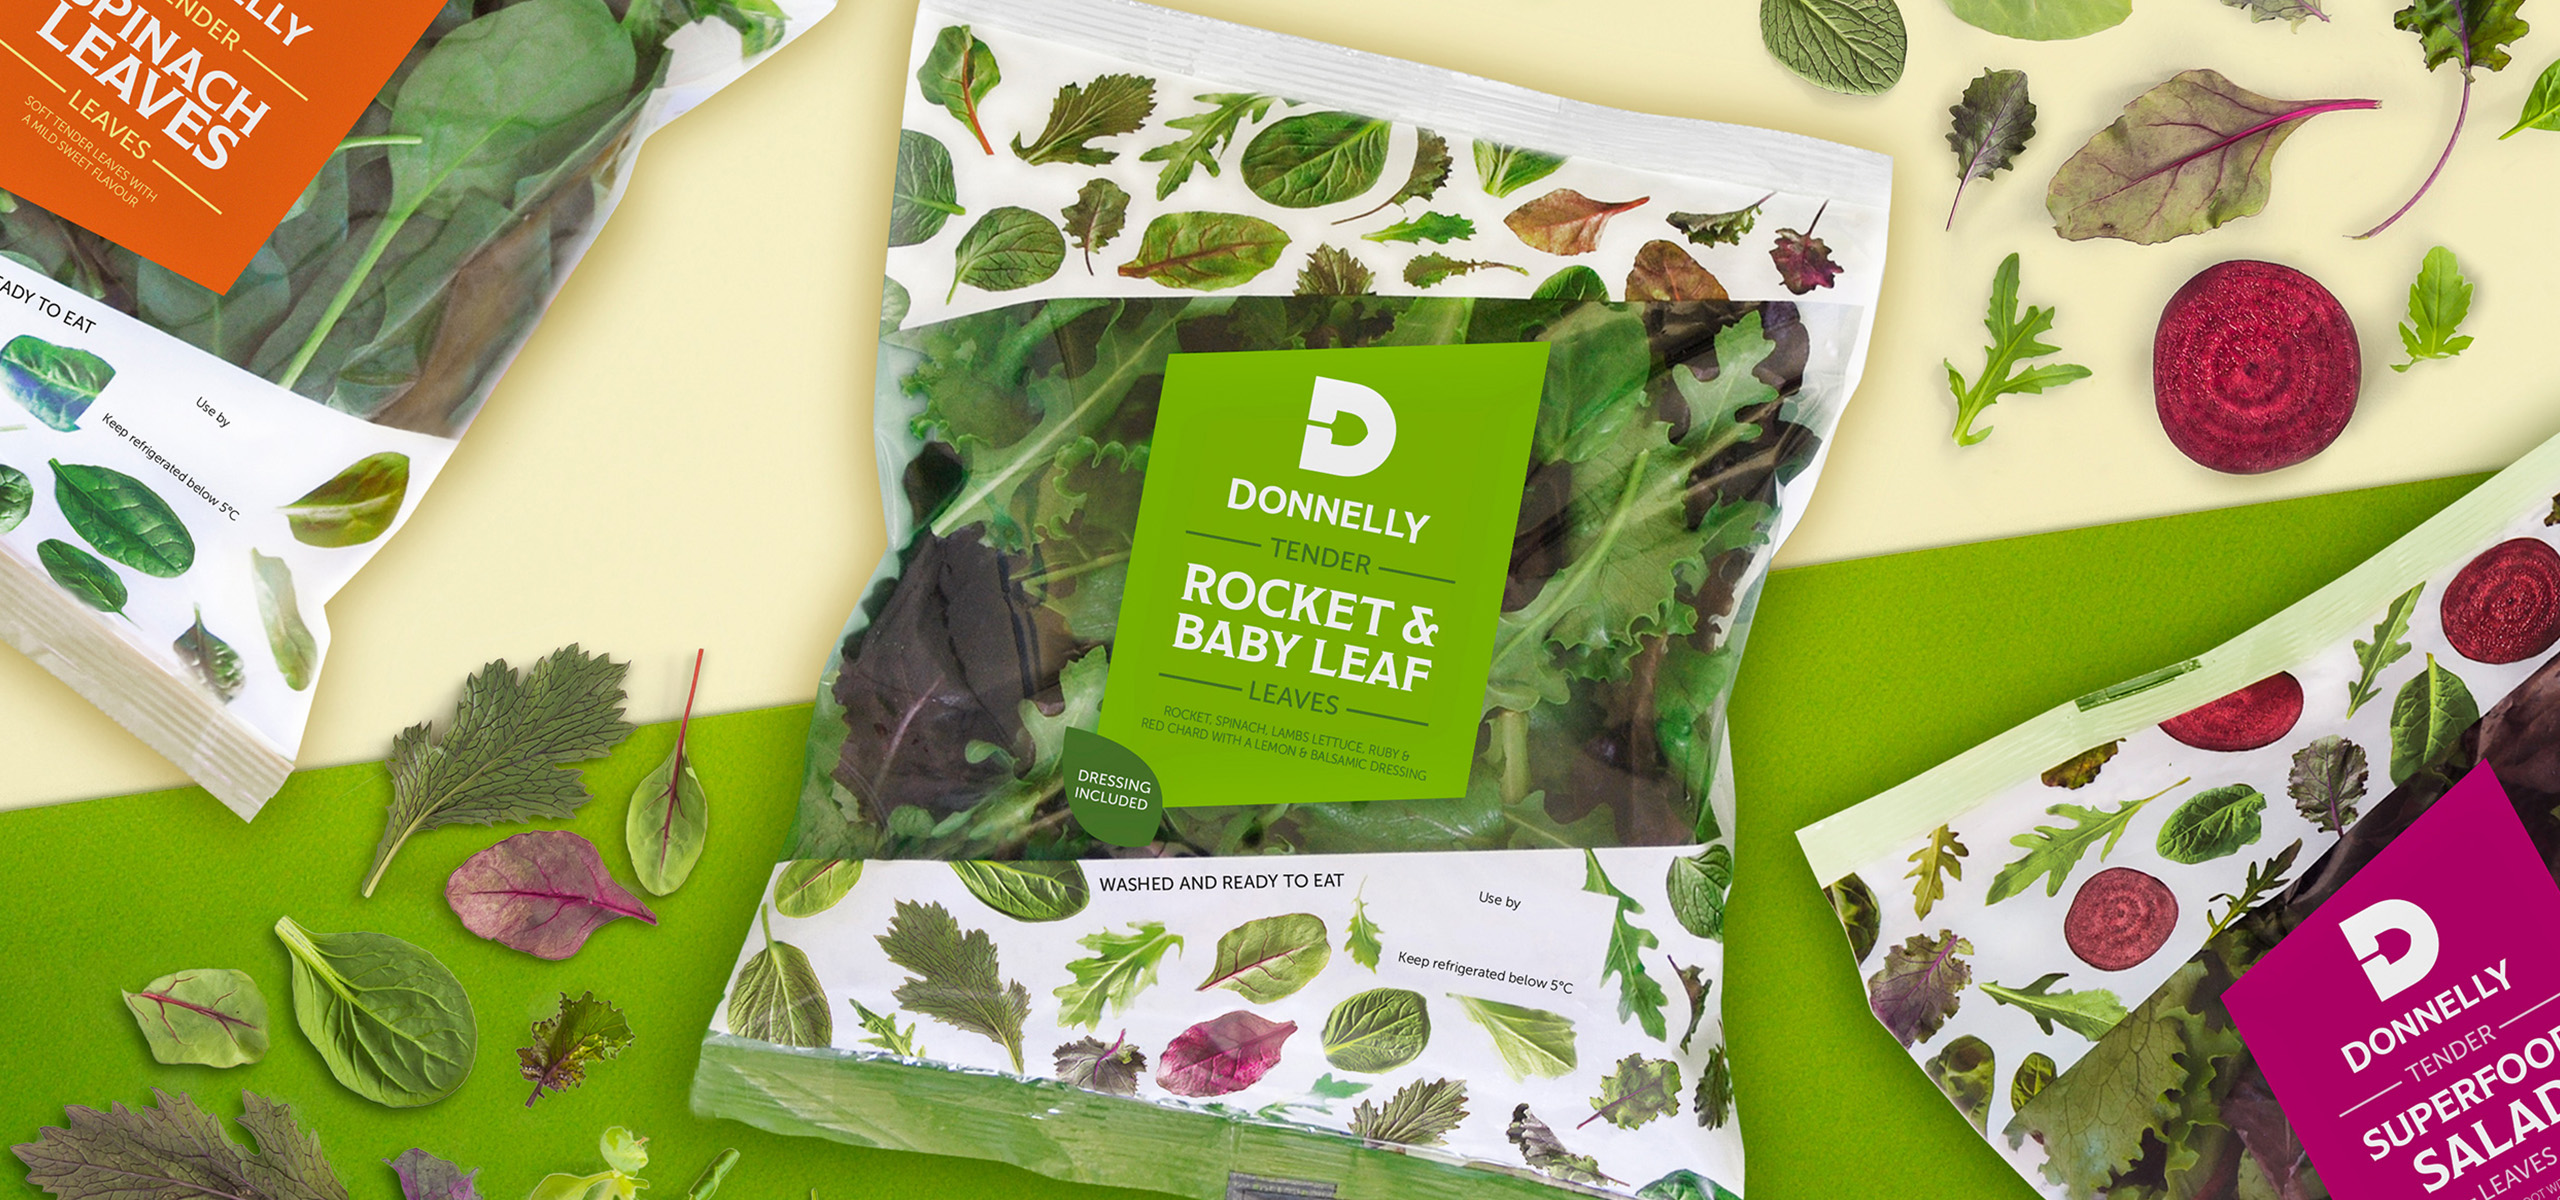 Packaging design for food brand Donnelly, designed by White Bear Studio